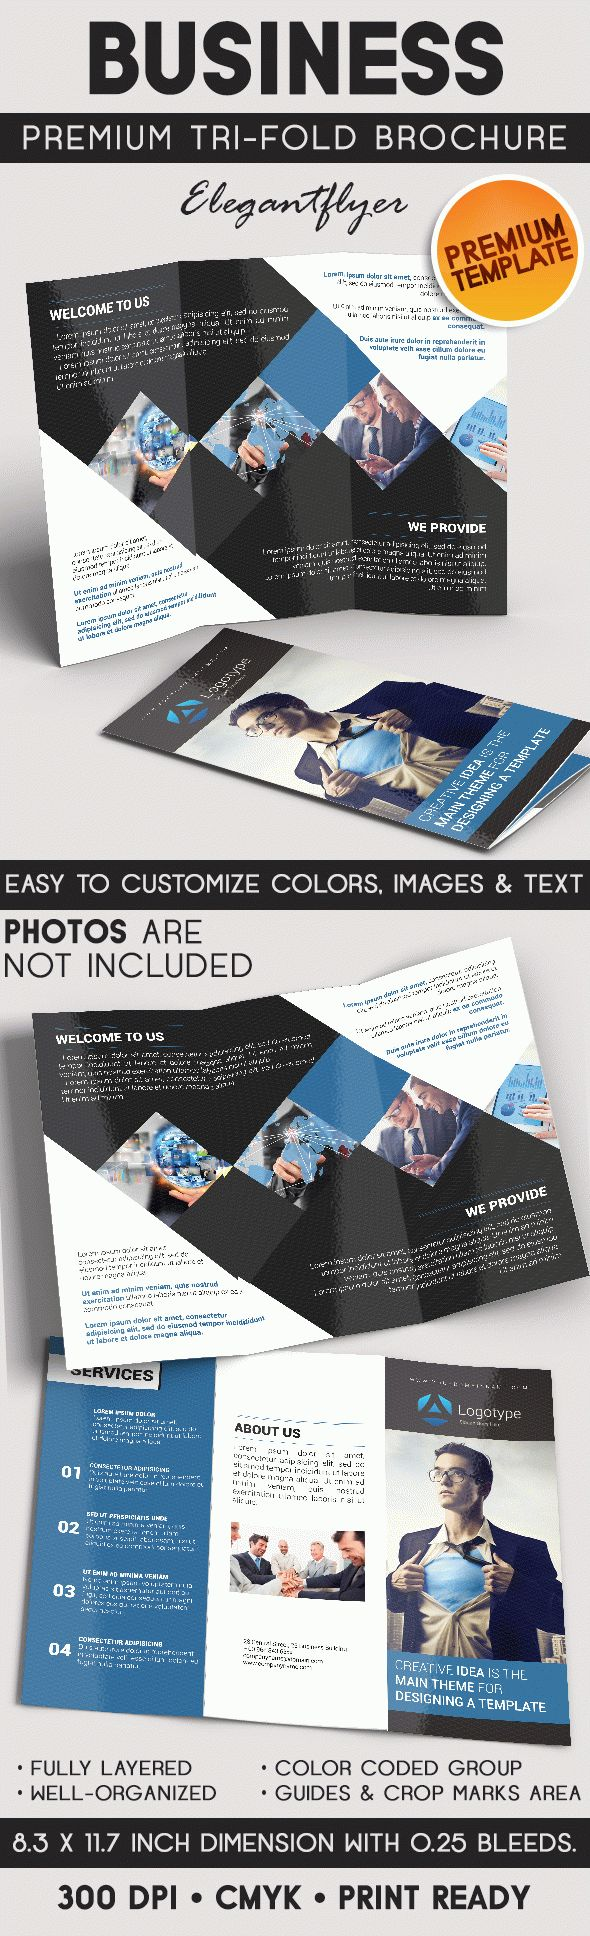 Business brochure tri fold brochure psd template by for Tri fold brochure psd template